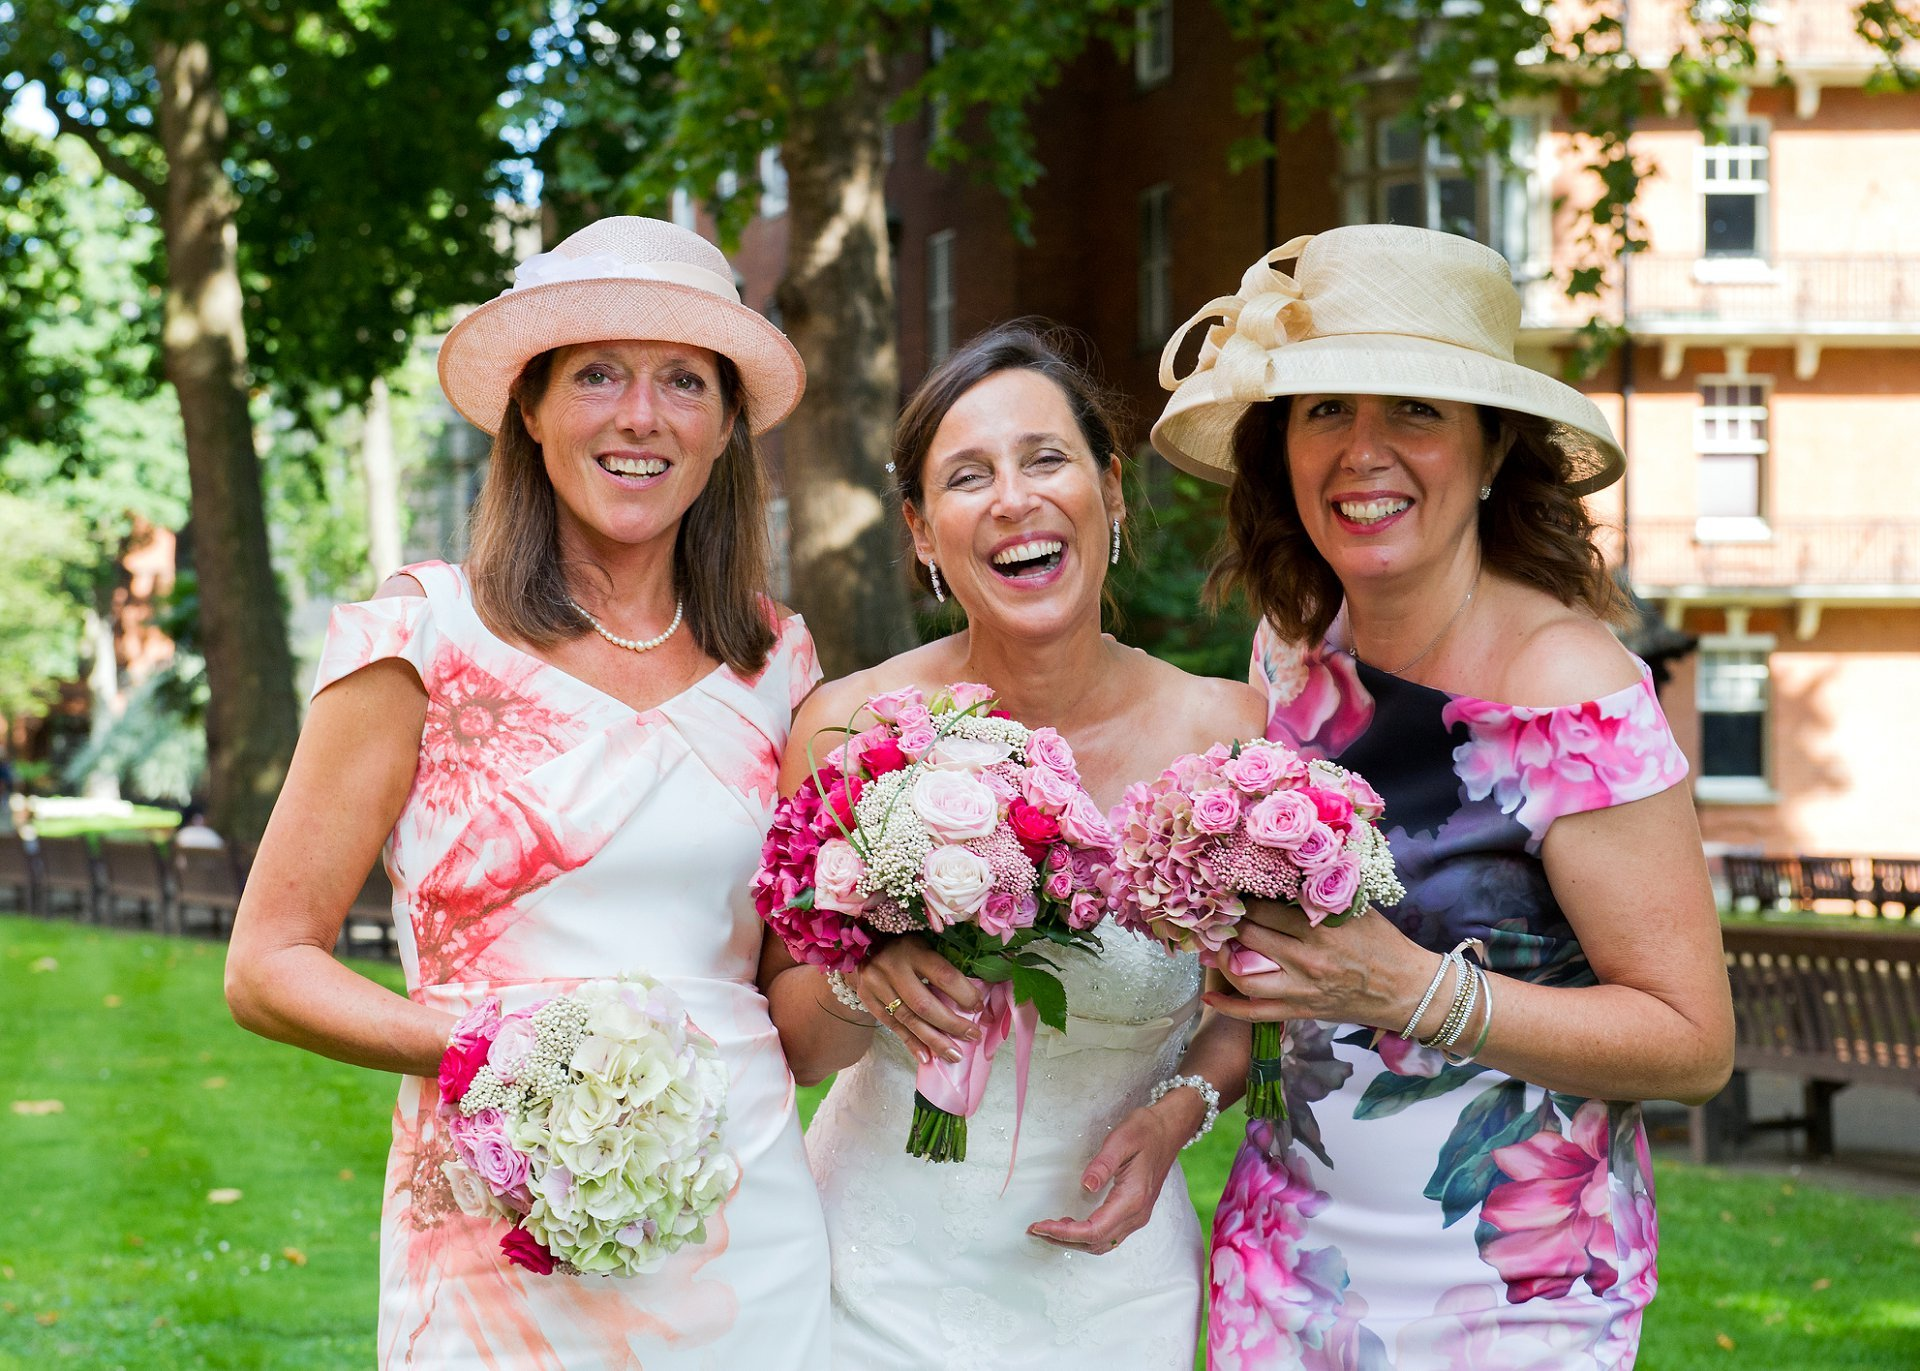 The bride and her friends in Mount Street Gardens